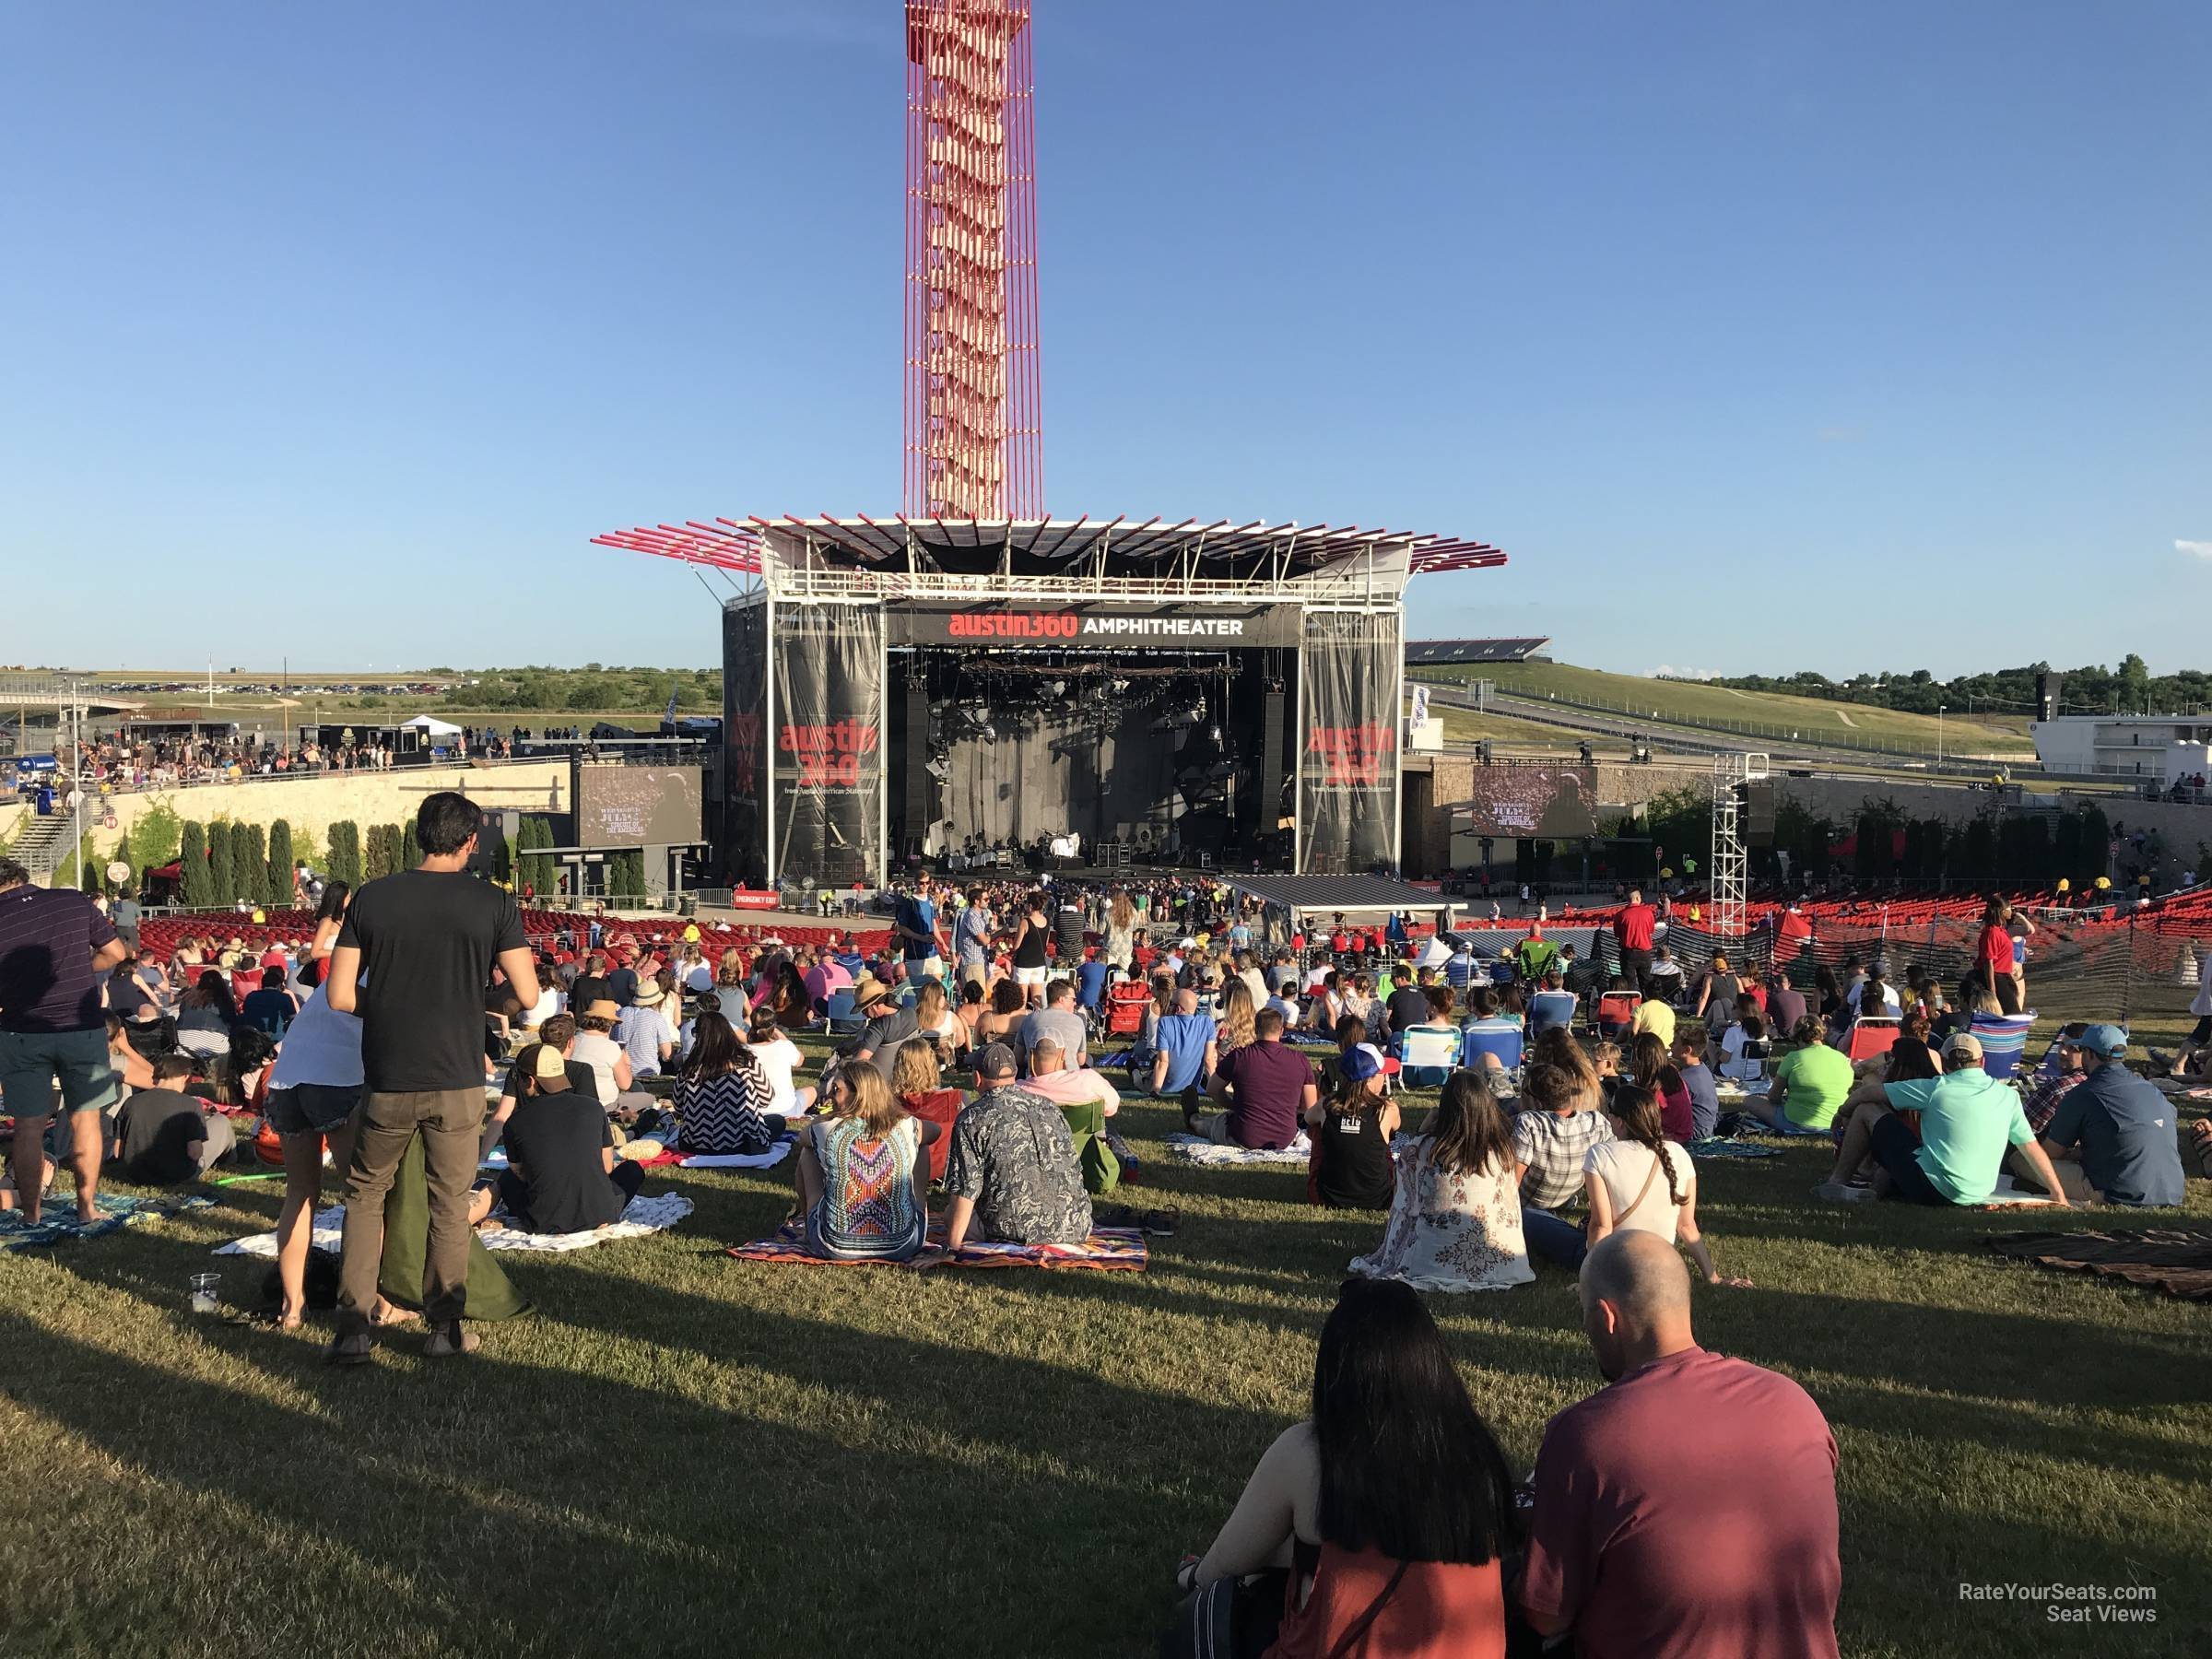 Concert Seat View For Austin360 Amphitheater Lawn